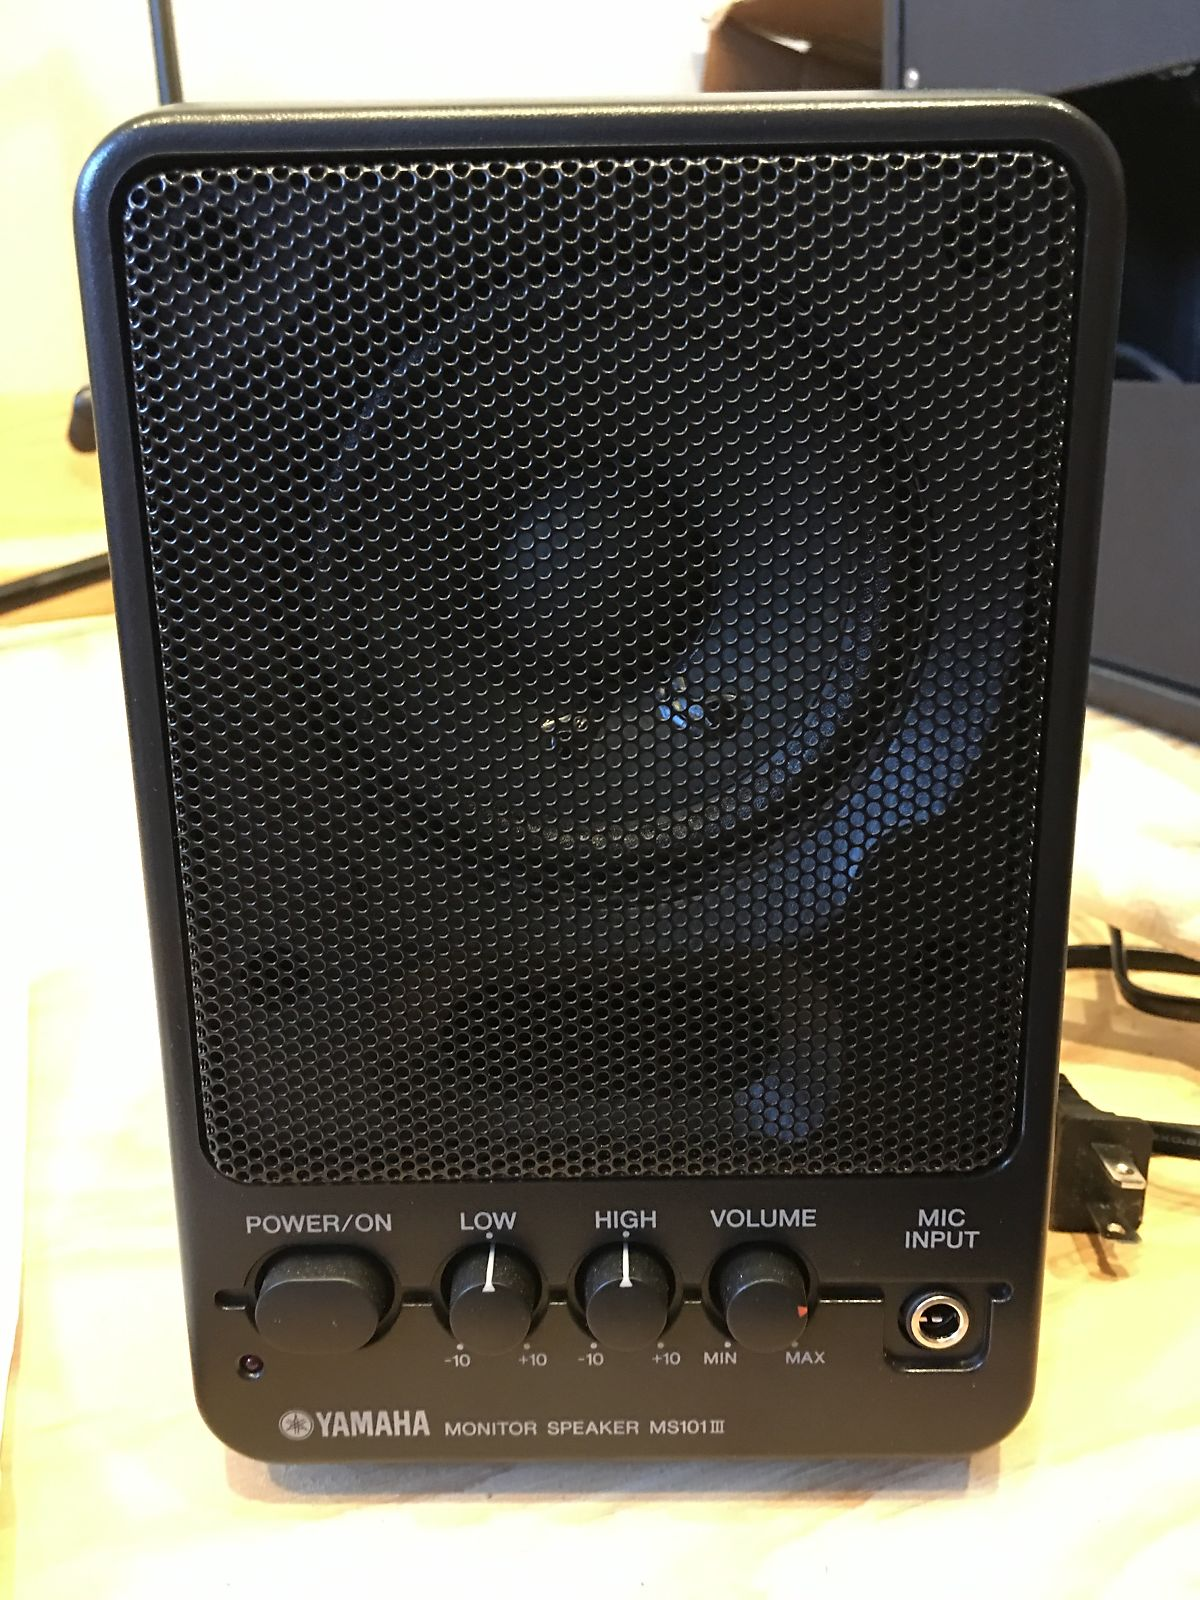 Yamaha ms101iii 10w powered monitor speaker single reverb for Yamaha powered monitor speakers